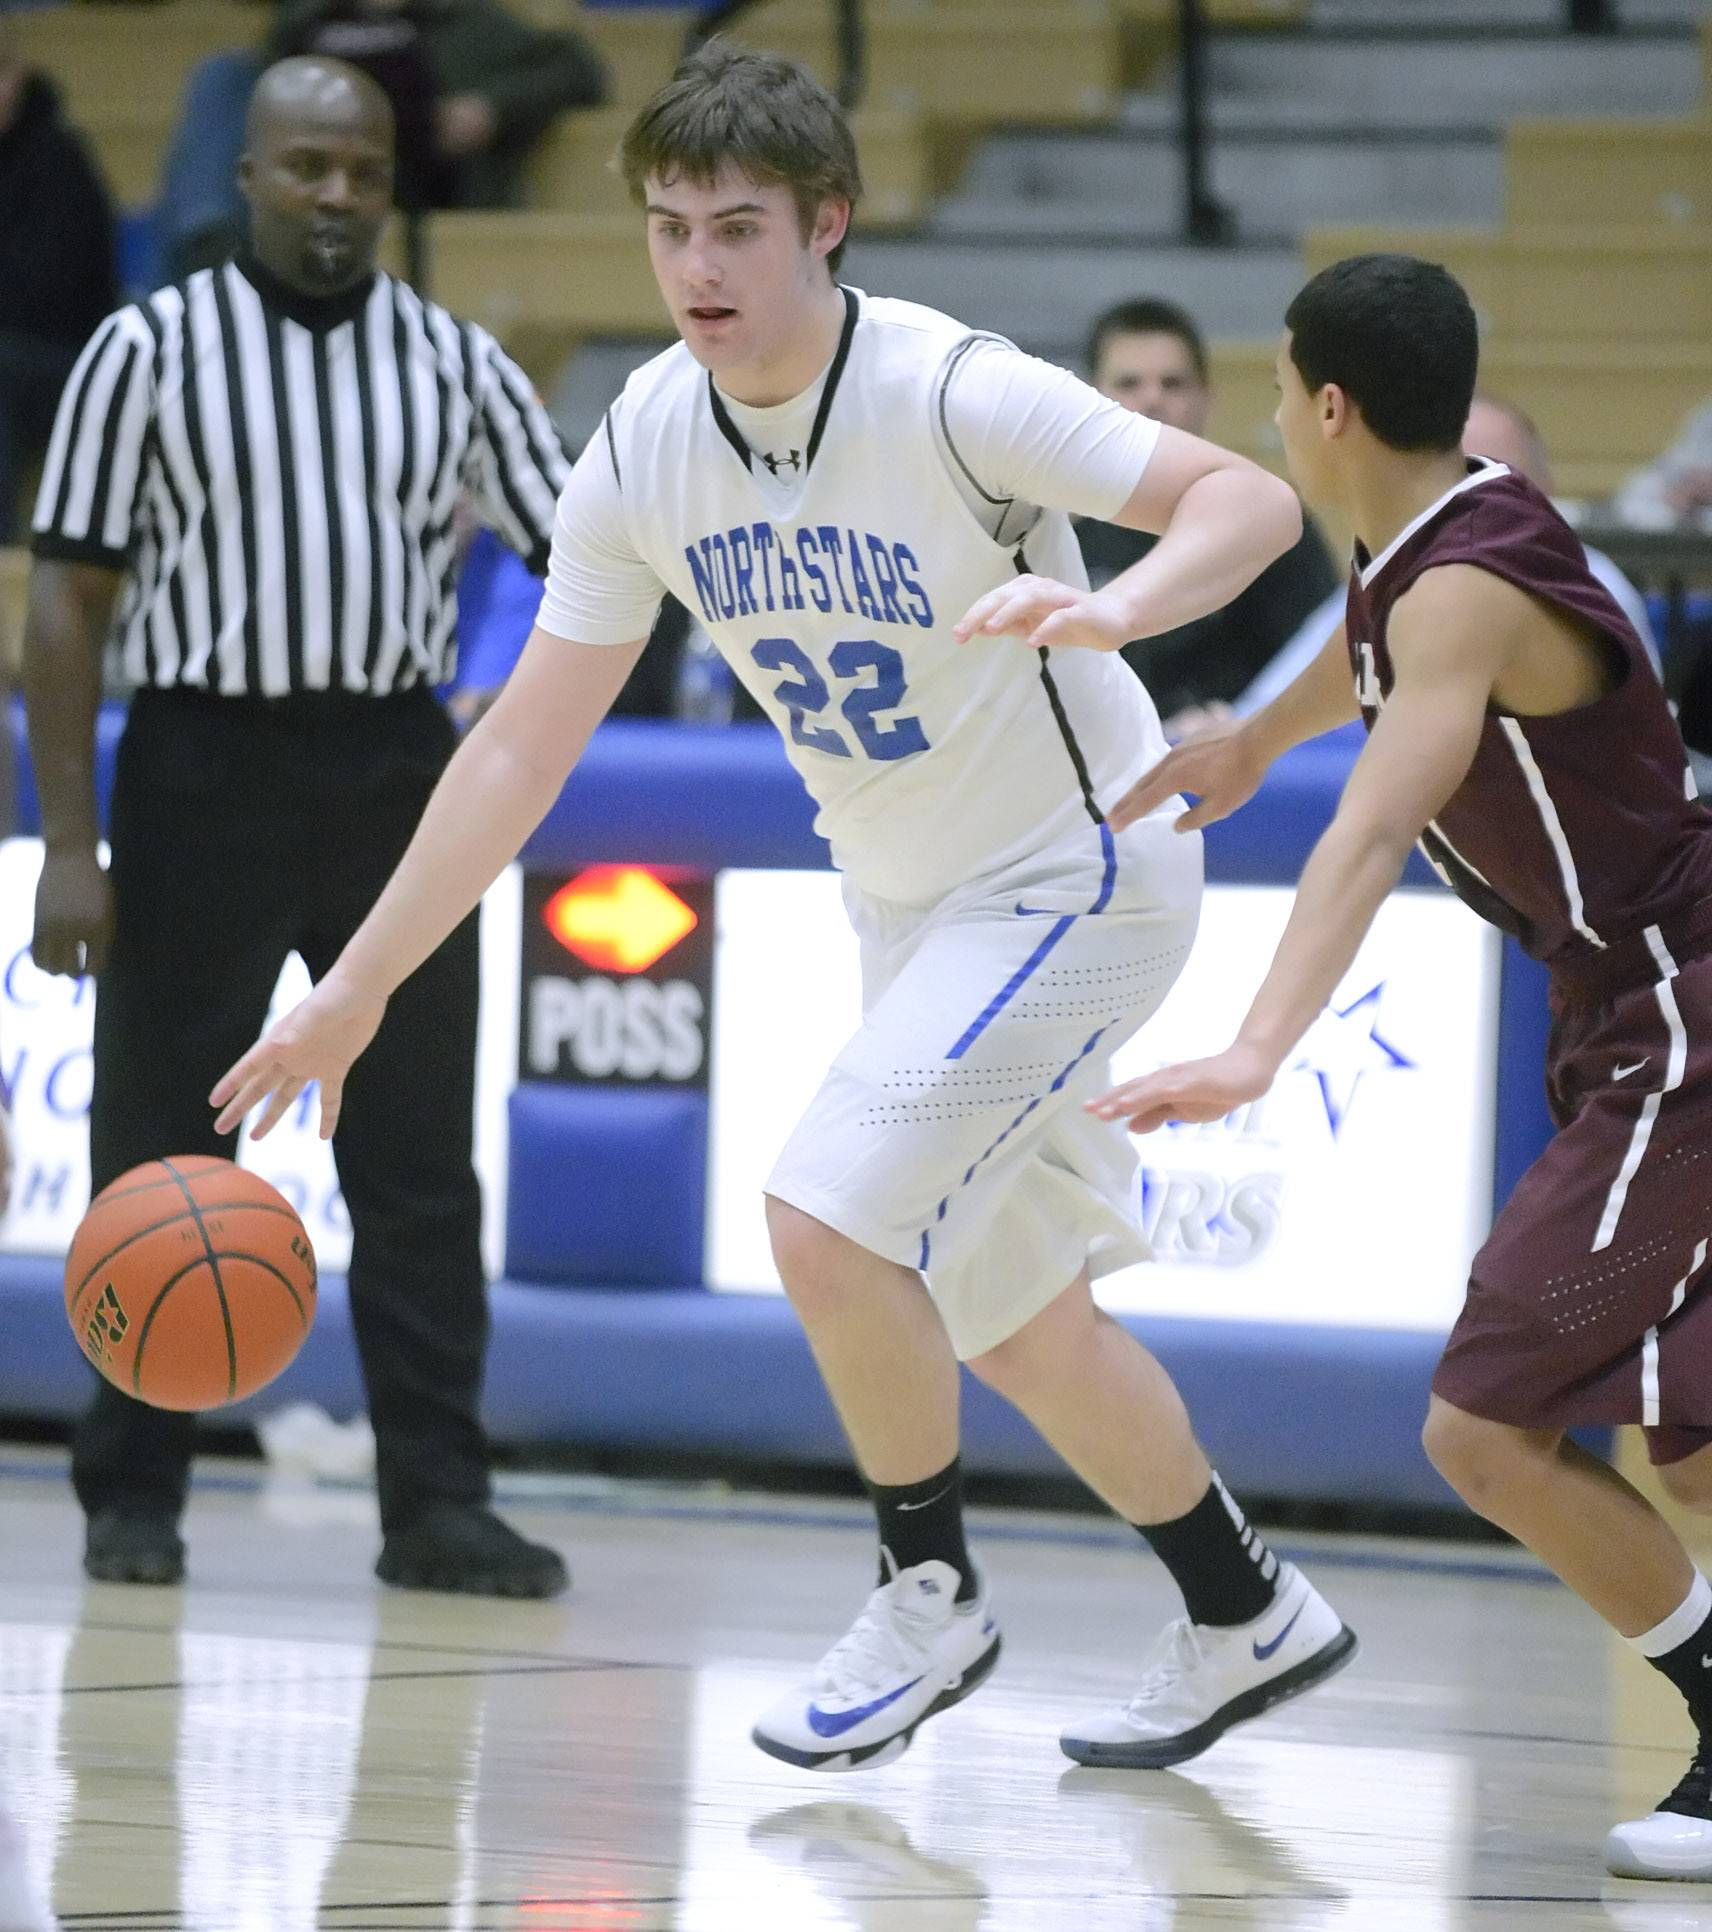 St. Charles North's Jack Callaghan dribbles around Elgin's Desmond Douglas in the fourth quarter of the North Stars' 49-46 win Tuesday in St. Charles.